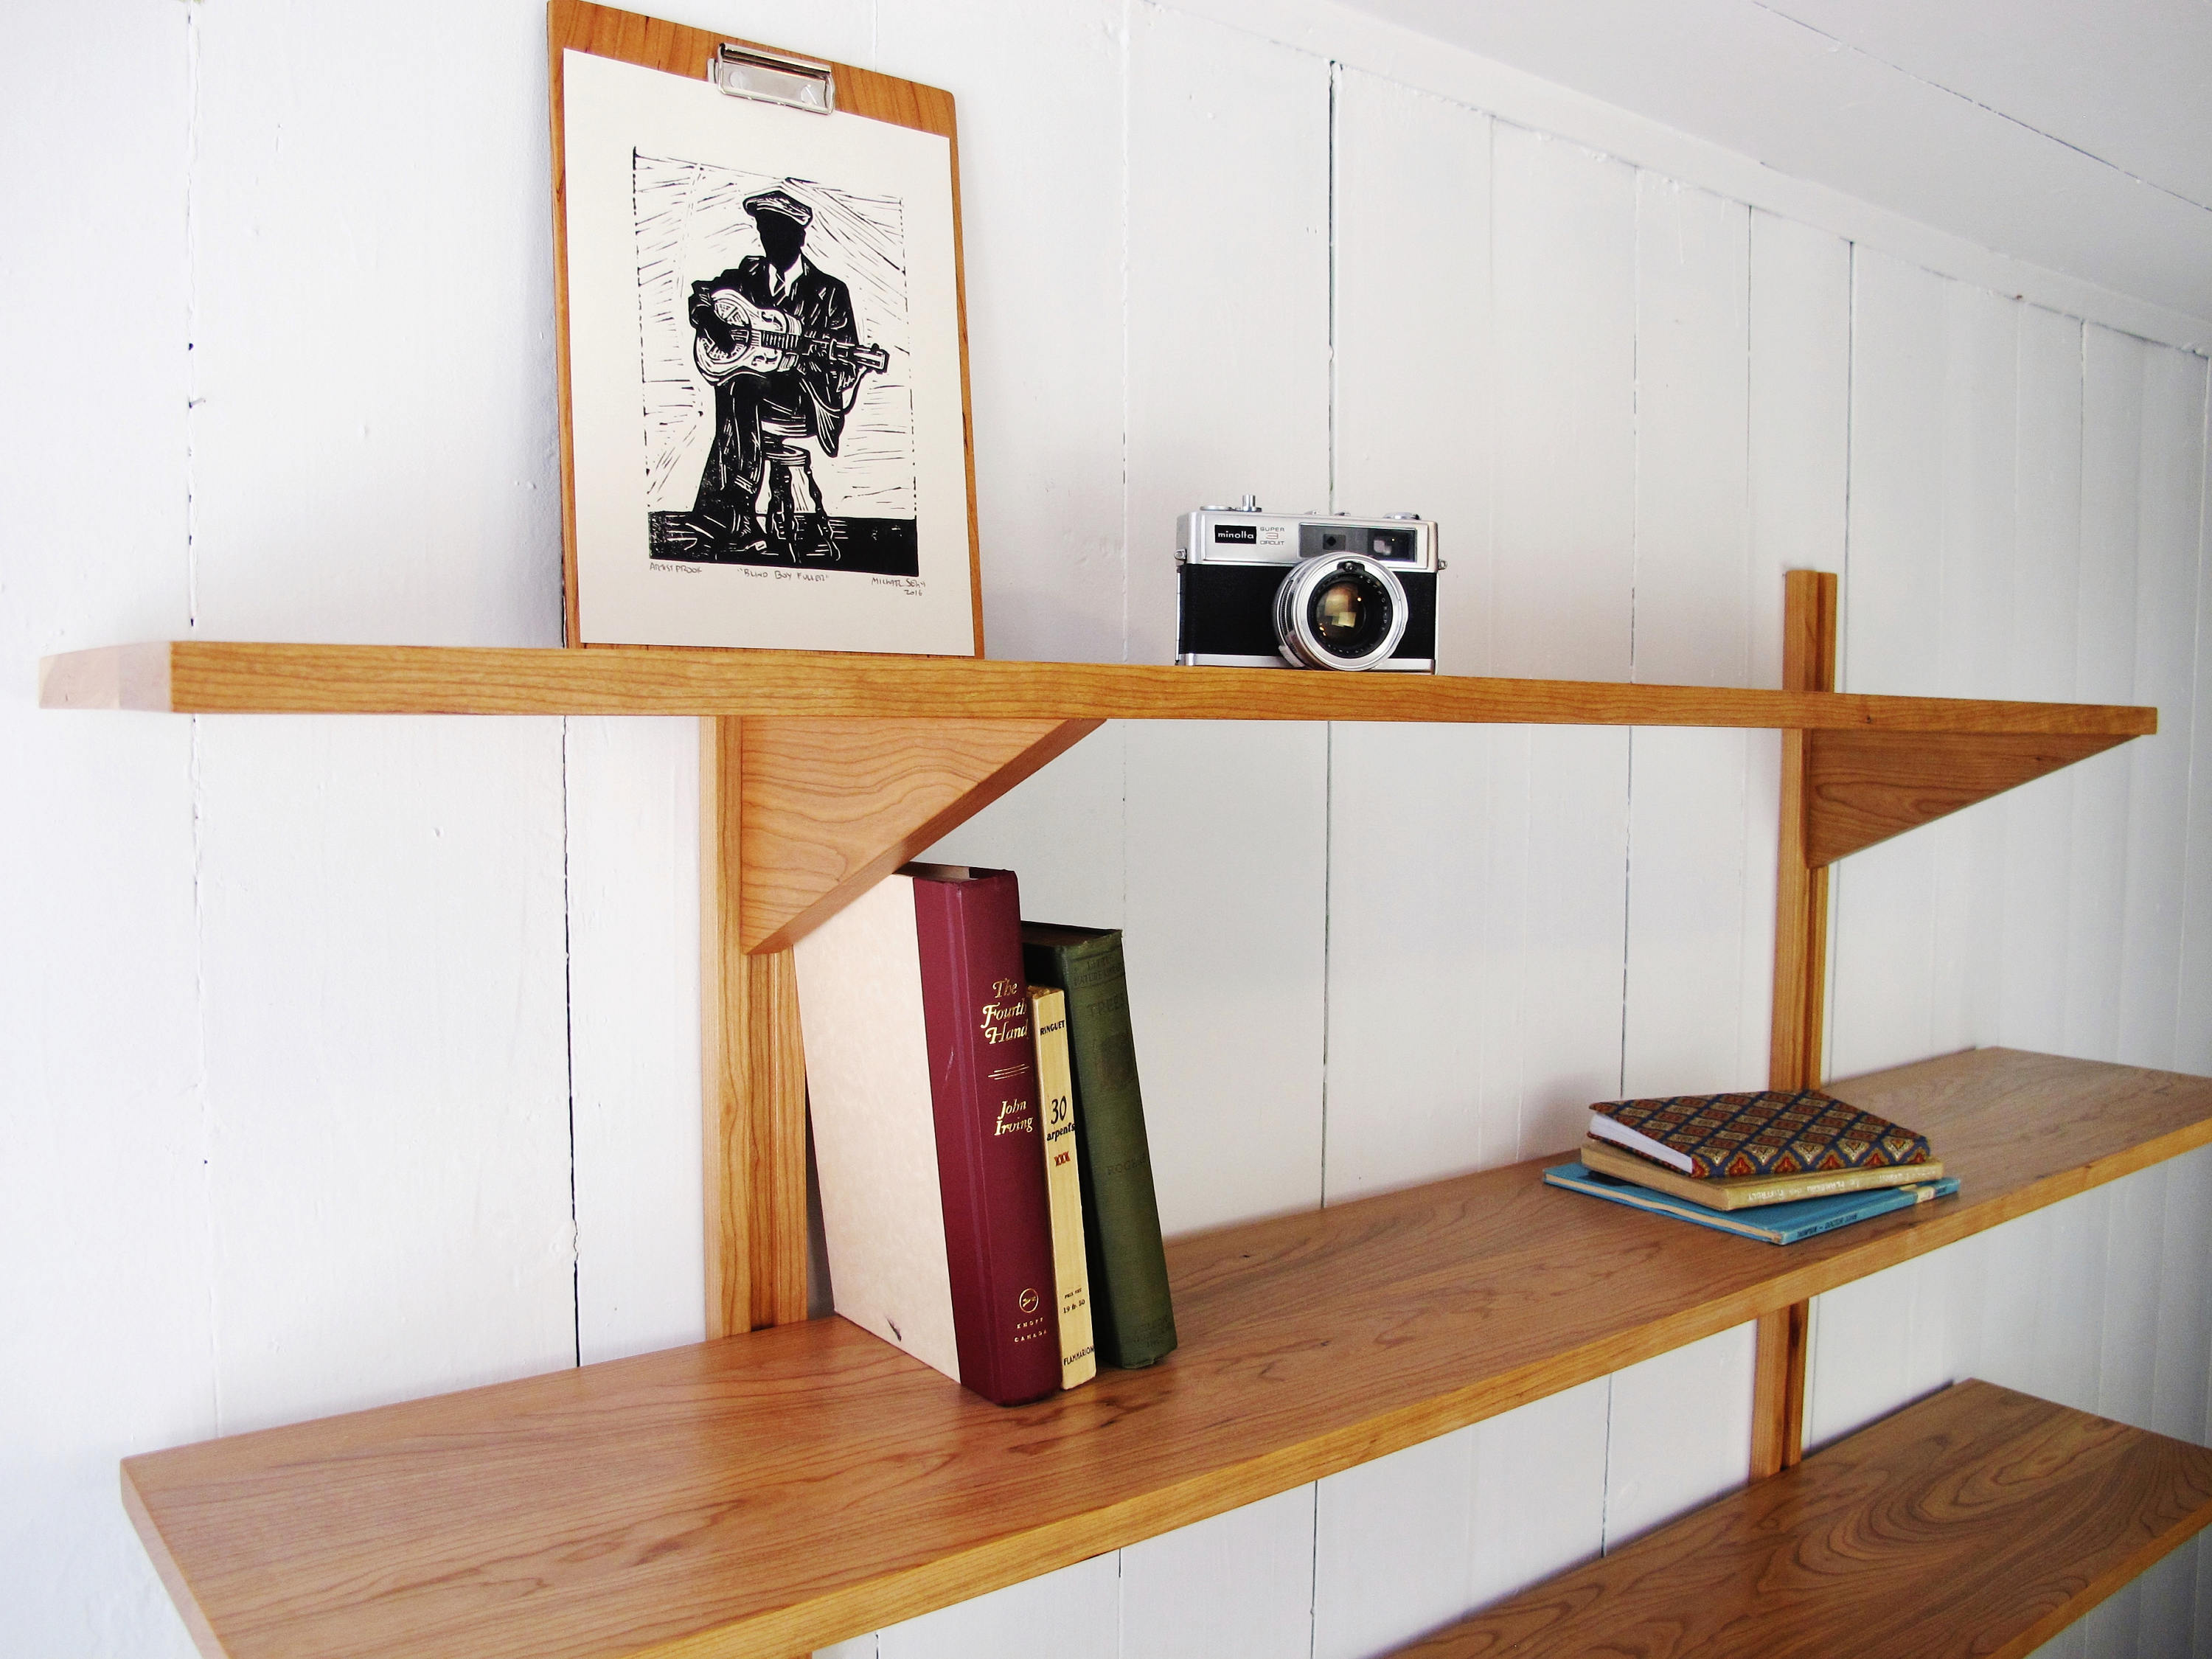 Bookshelves - 2 Shelves - Wall Mounted System - Customizable - Mid-century  Bookcase - Solid Wood - Wall Unit - Scandinavian Style - Modern